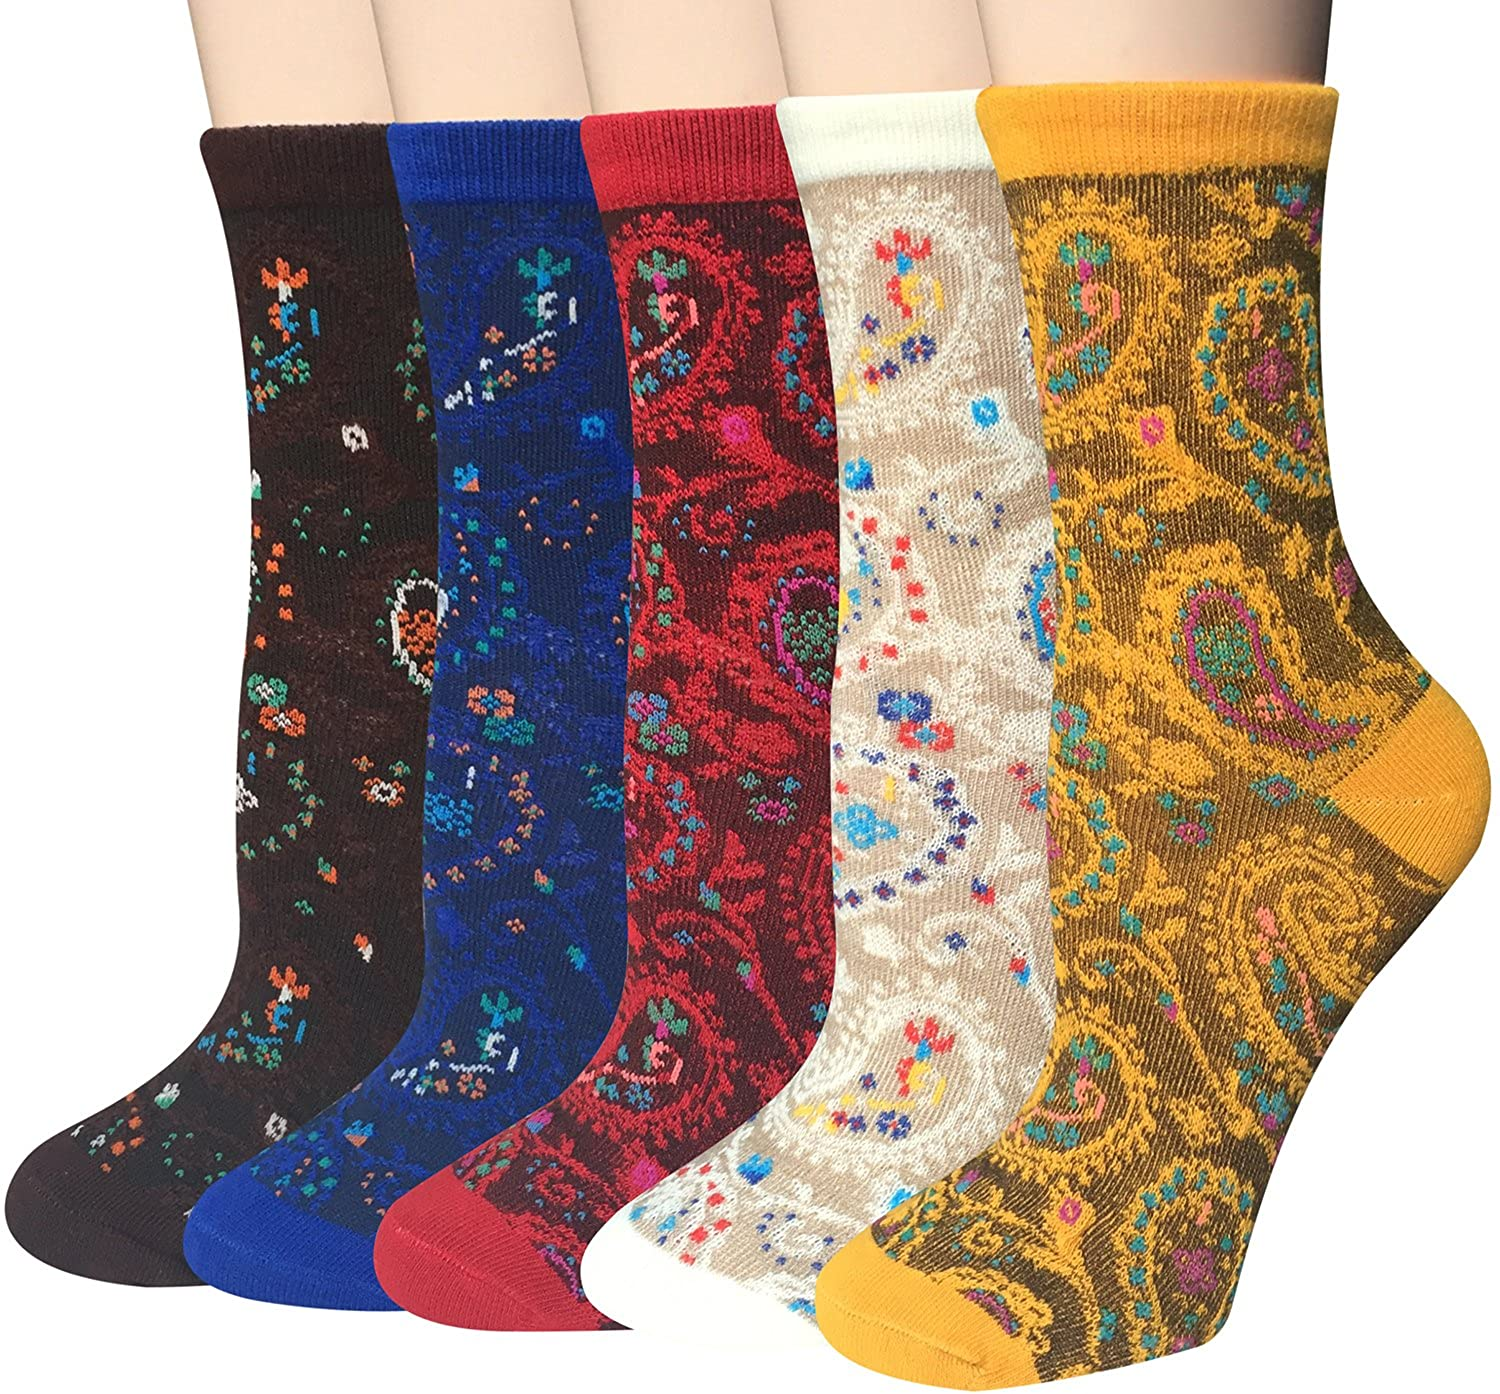 Chalier 5-6 Pairs Womens Funny Socks Vintage Cotton Crew Patterned Socks Novelty Fun Socks for Women